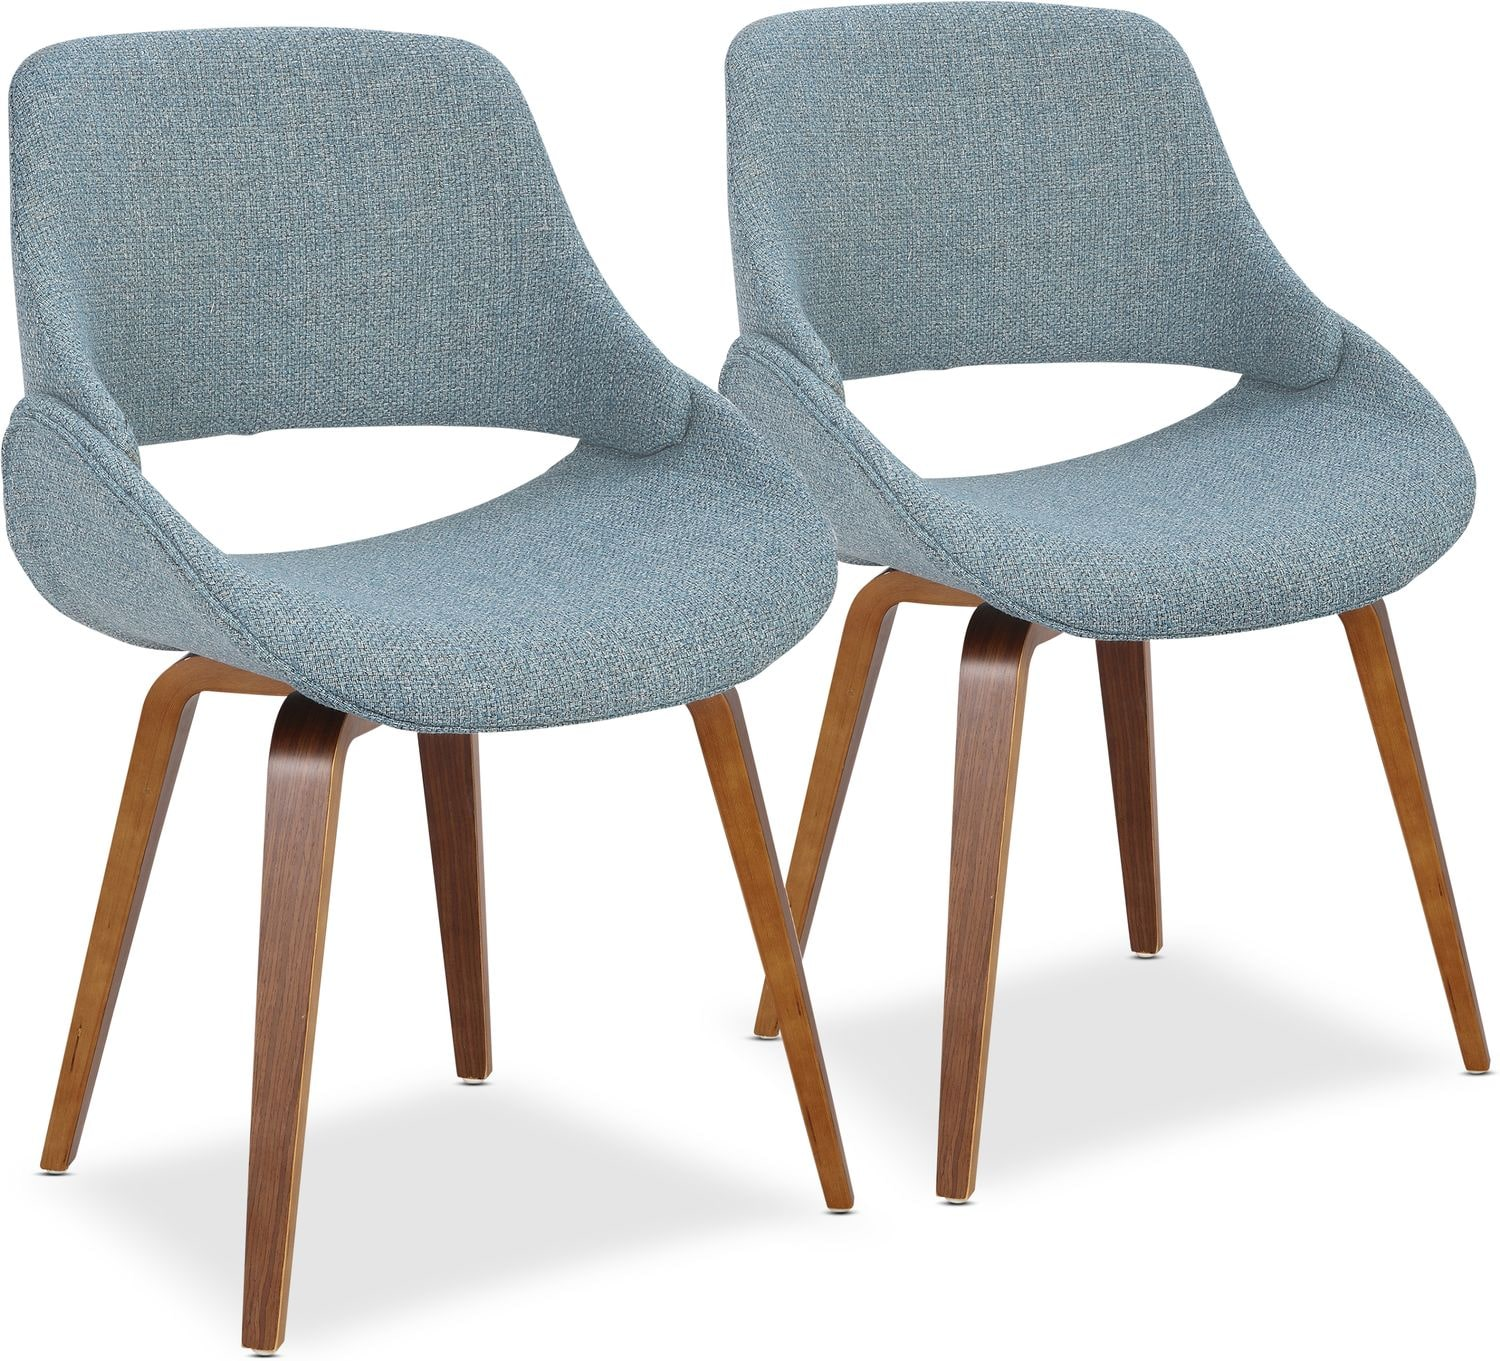 Dining Room Furniture - Uma Set of 2 Dining Chairs